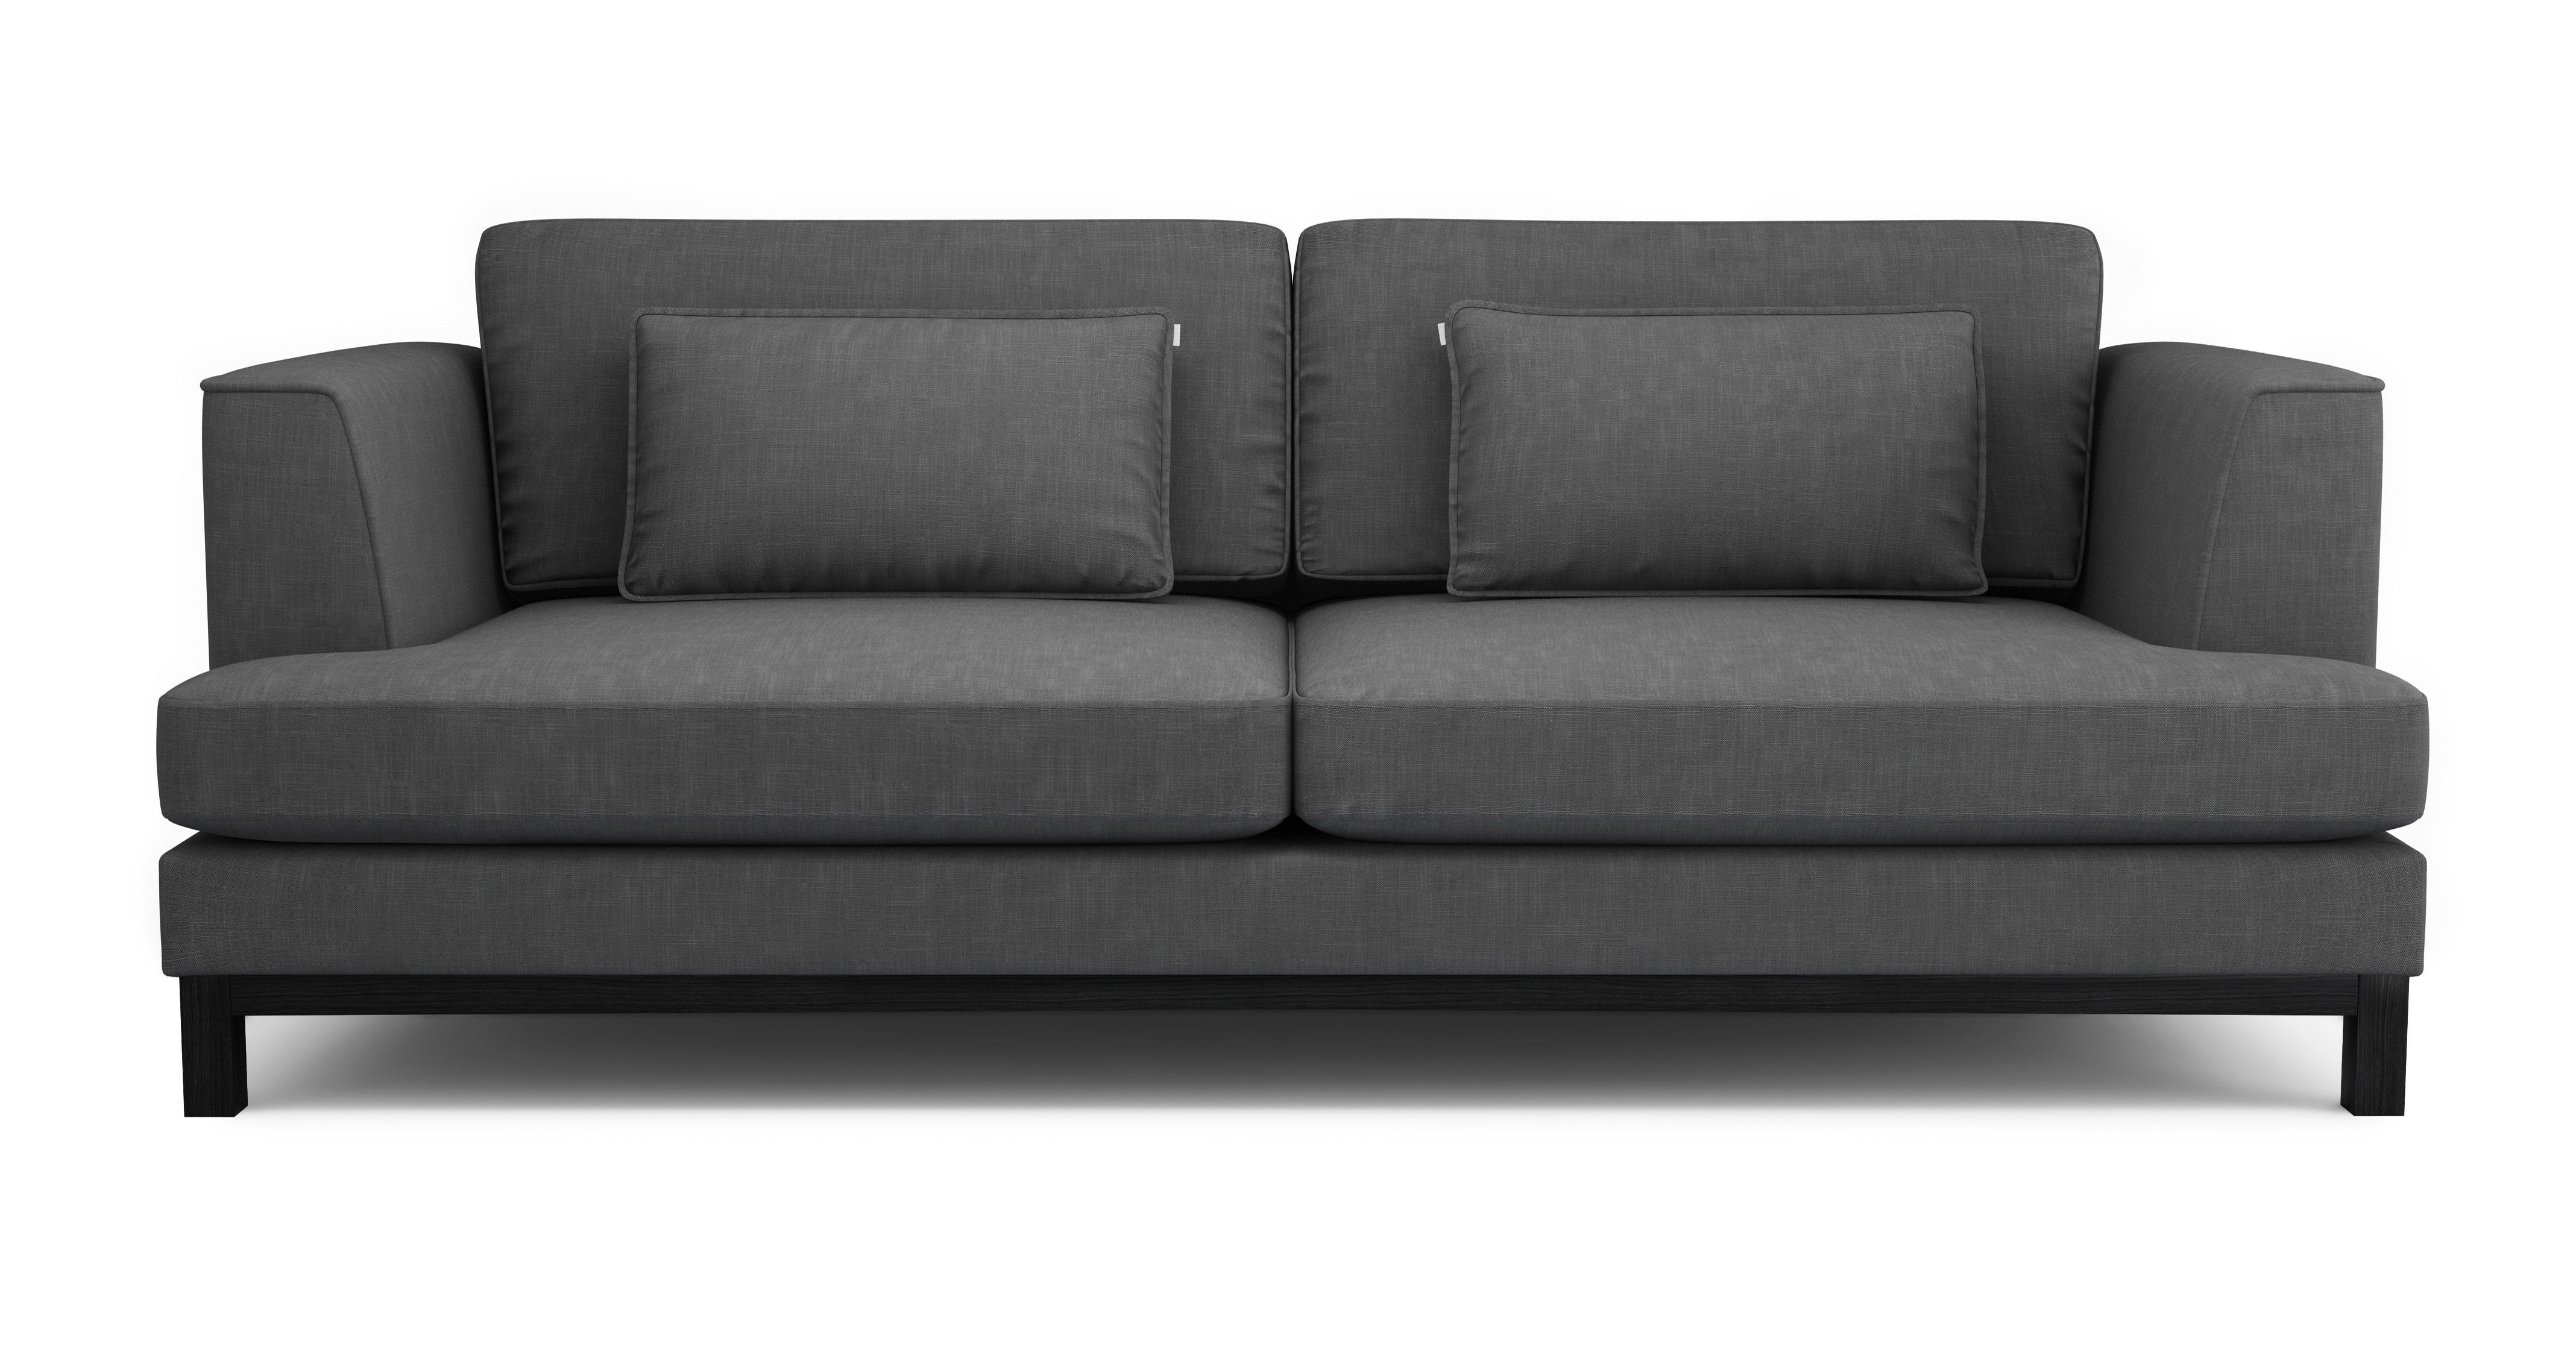 best family sofas uk ergonomic 4 seater sofa dfs co flint french connection